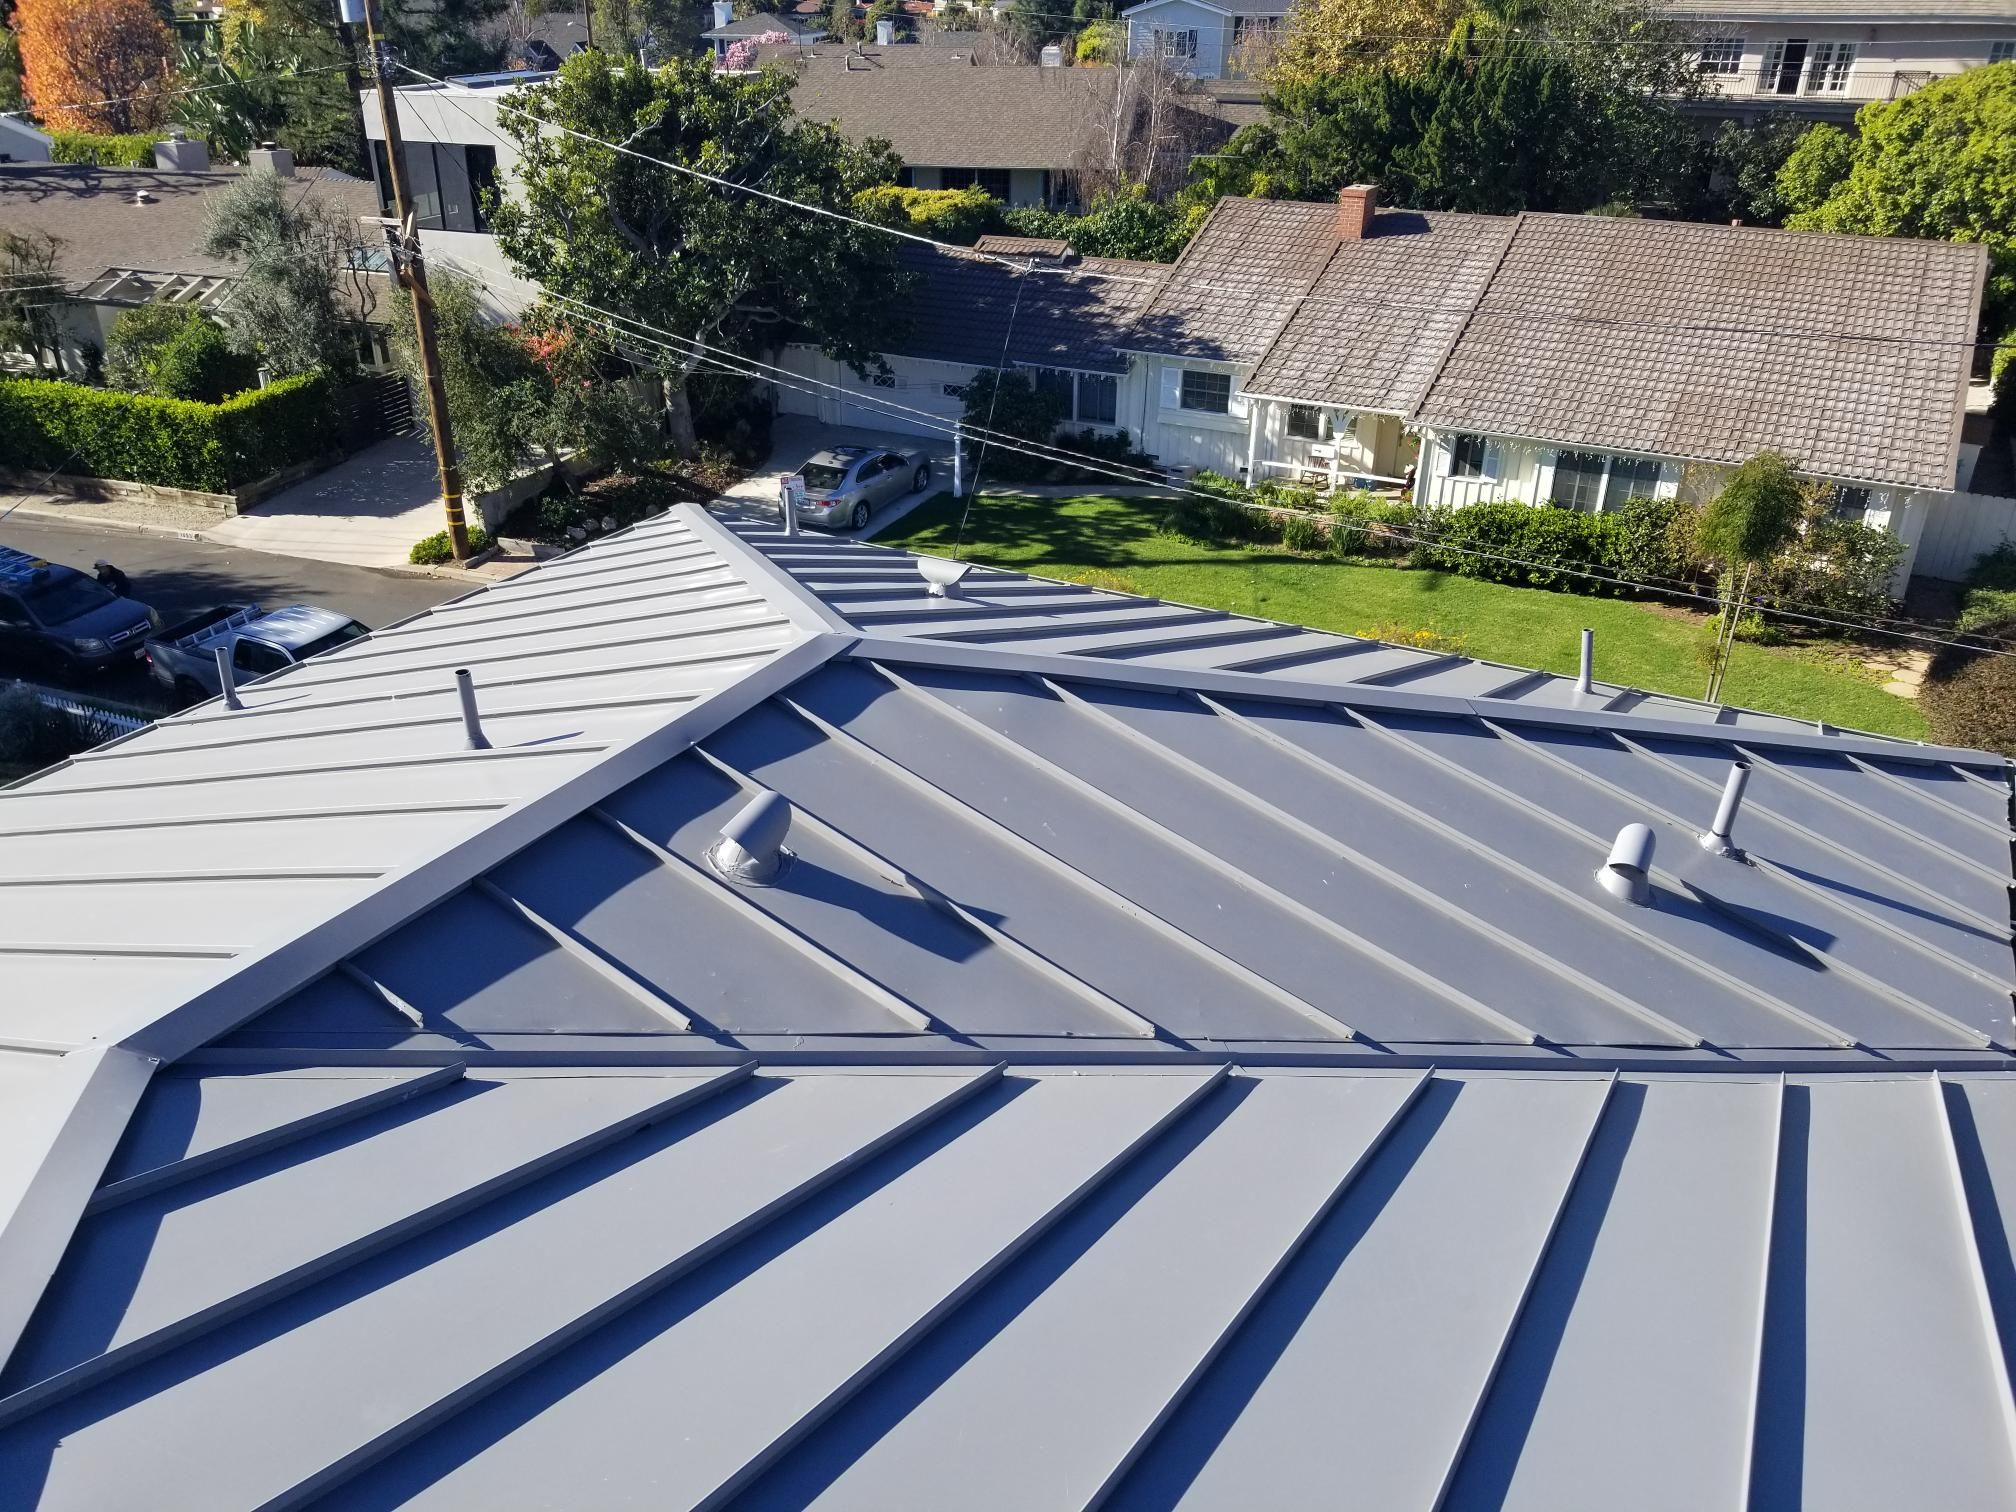 Bestway Roofing Los Angeles Ca Is One Of The Best Roofing Services To Provide You The Higher Quality Of Roofing Serv Los Angeles Roofing Contractor In 2019